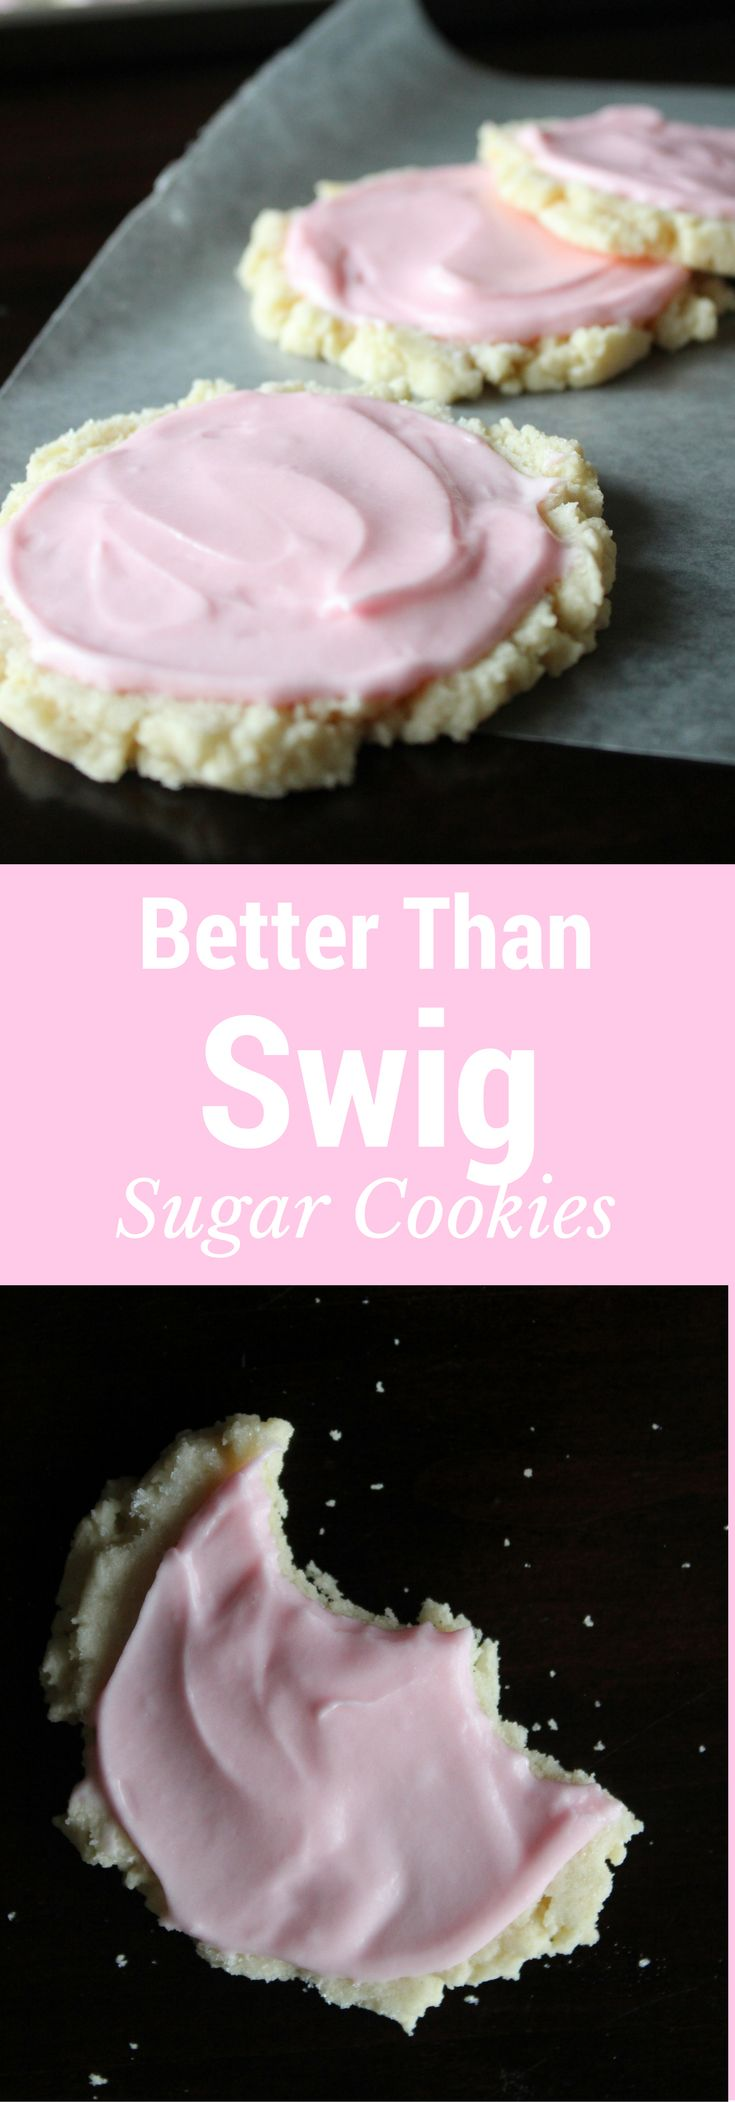 Copycat Swig Sugar Cookies - these are the B.E.S.T sugar cookies EVER. Hands down.